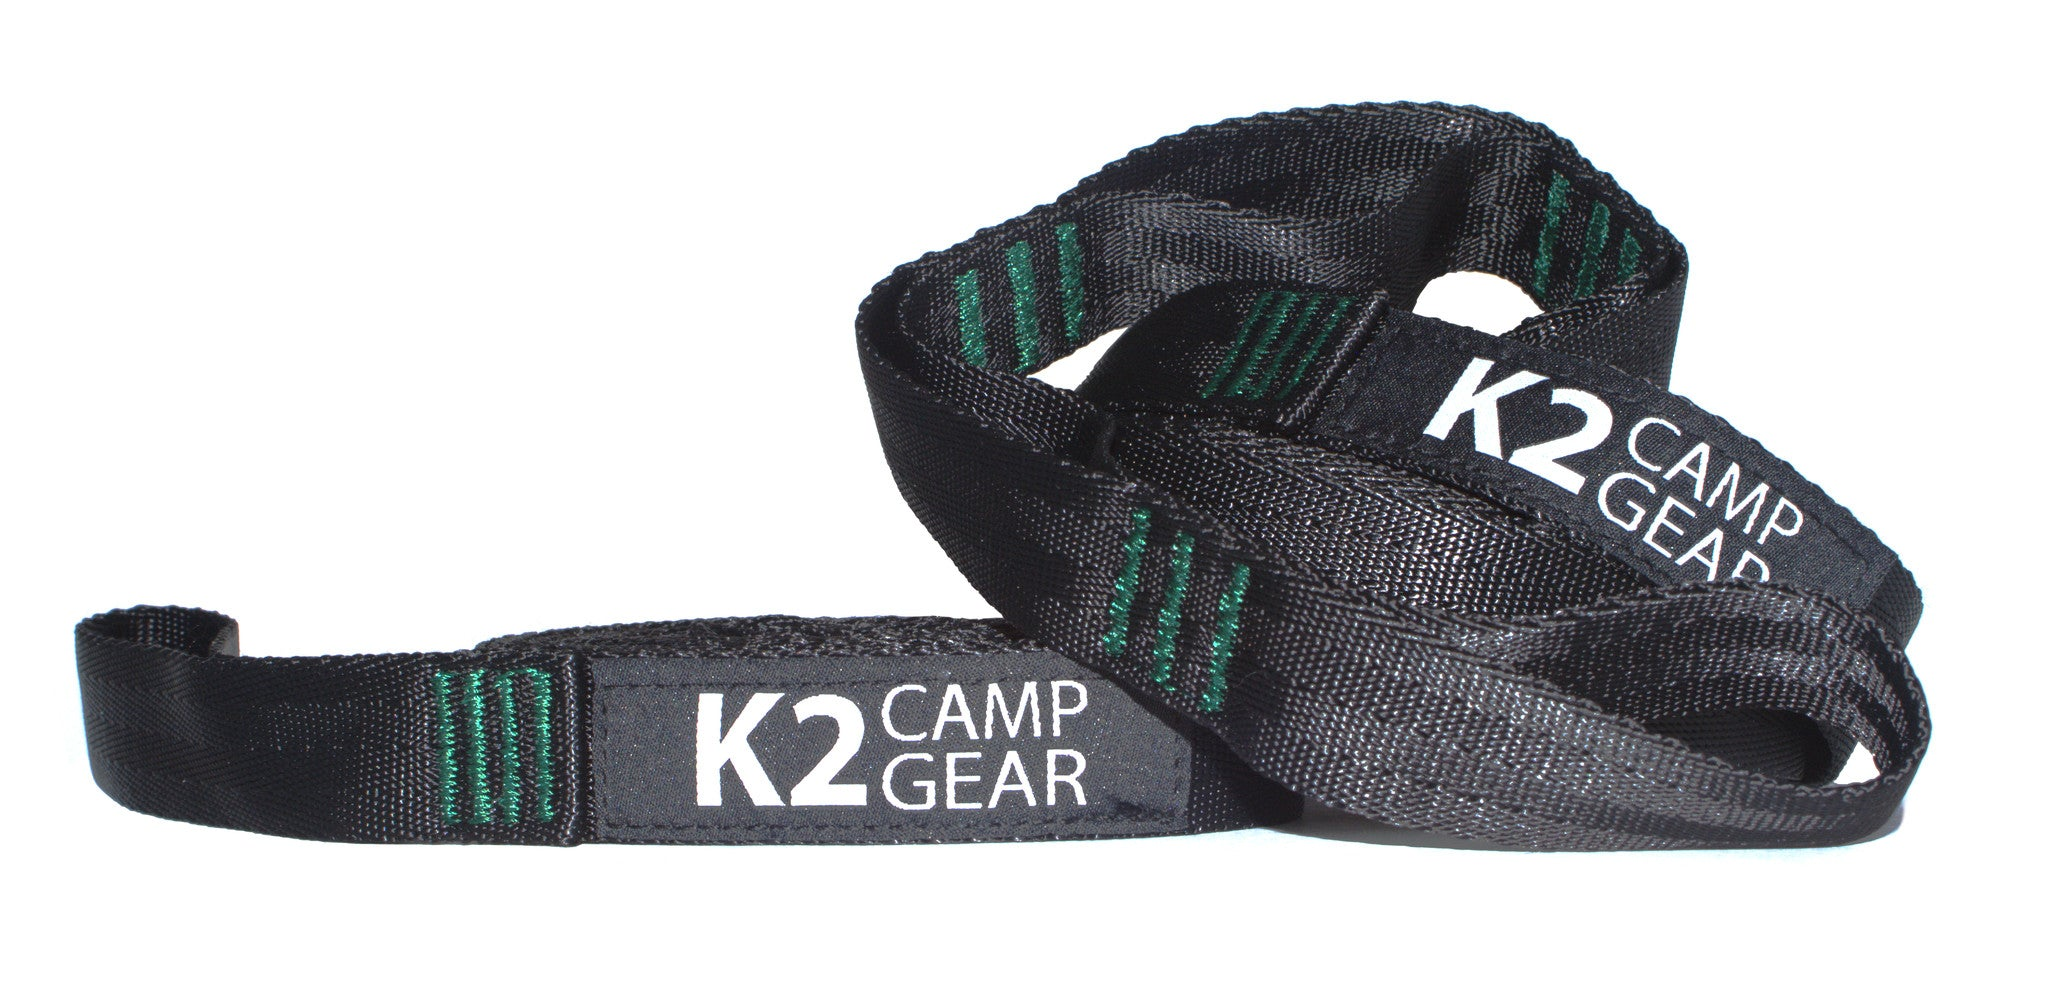 K2 Camp Gear Triple Stitched Camping Hammock Straps Tree Saver Set - 2 Straps and Carrying Case Green/Black - K2campgear - 4